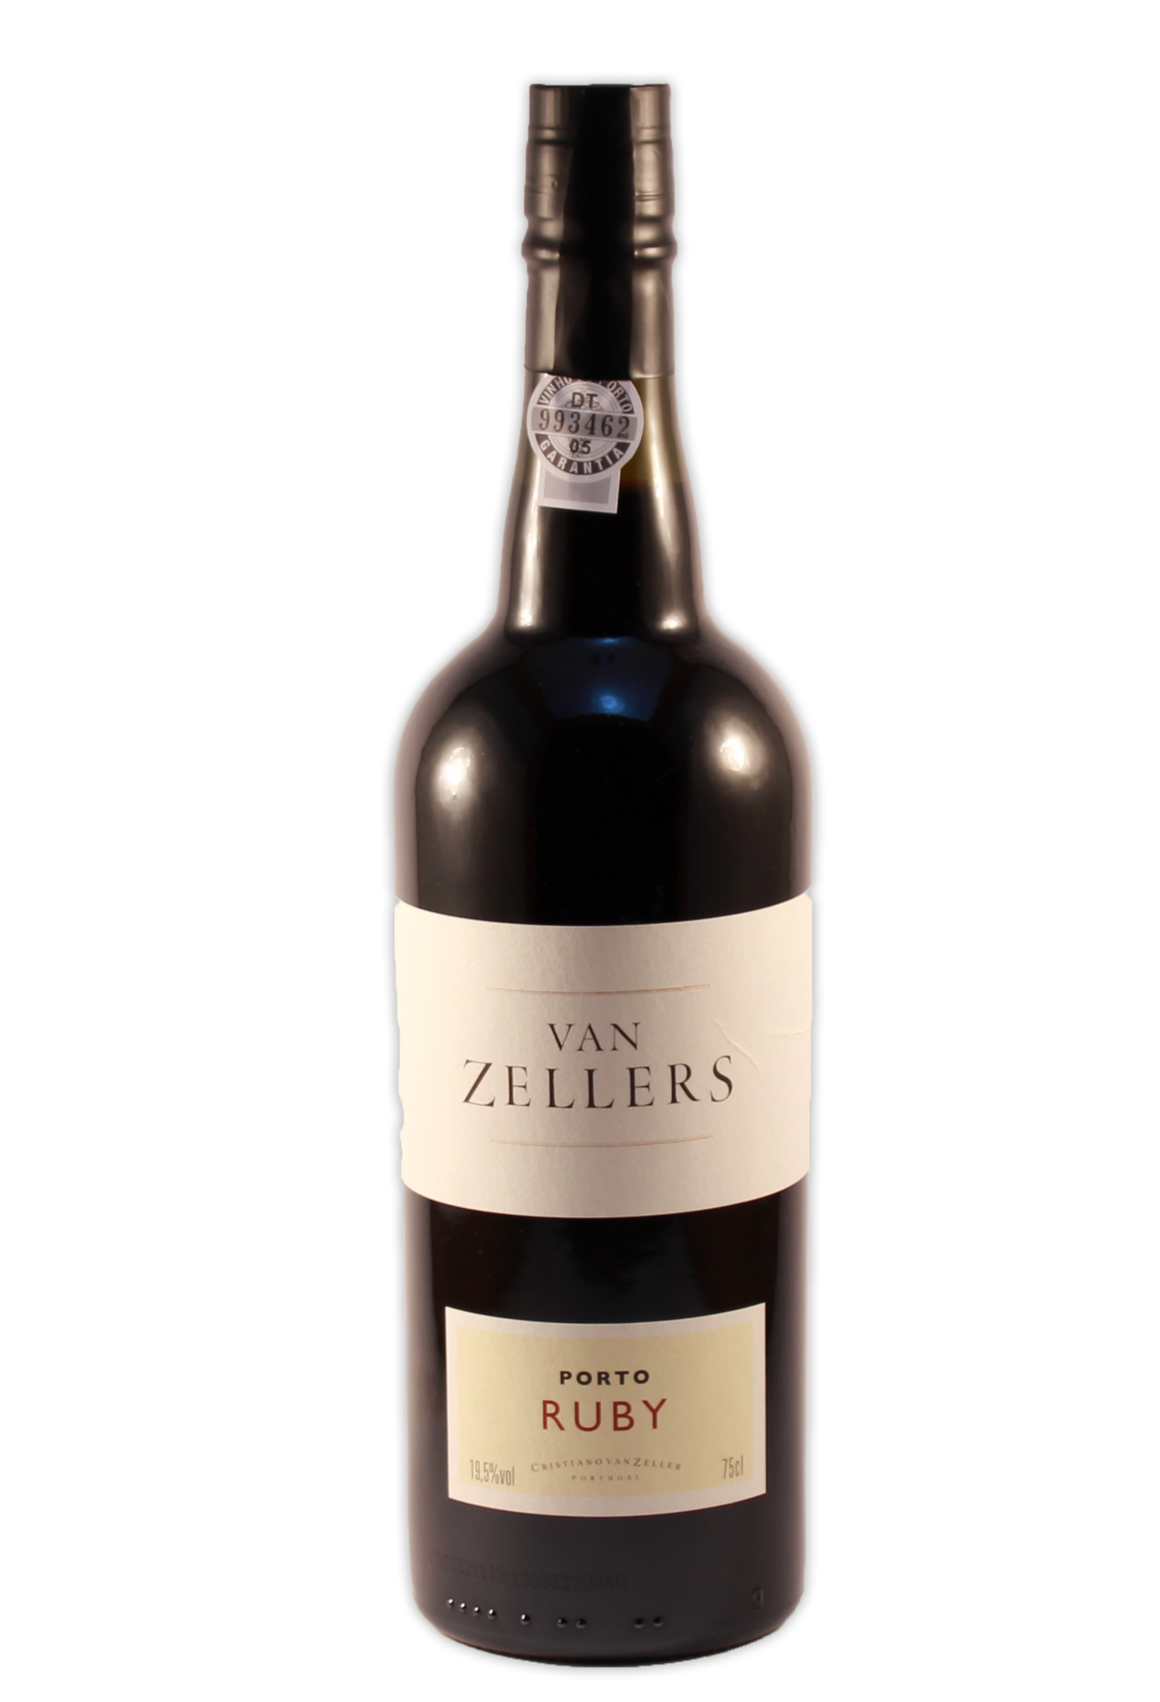 Van Zellers Ruby Port